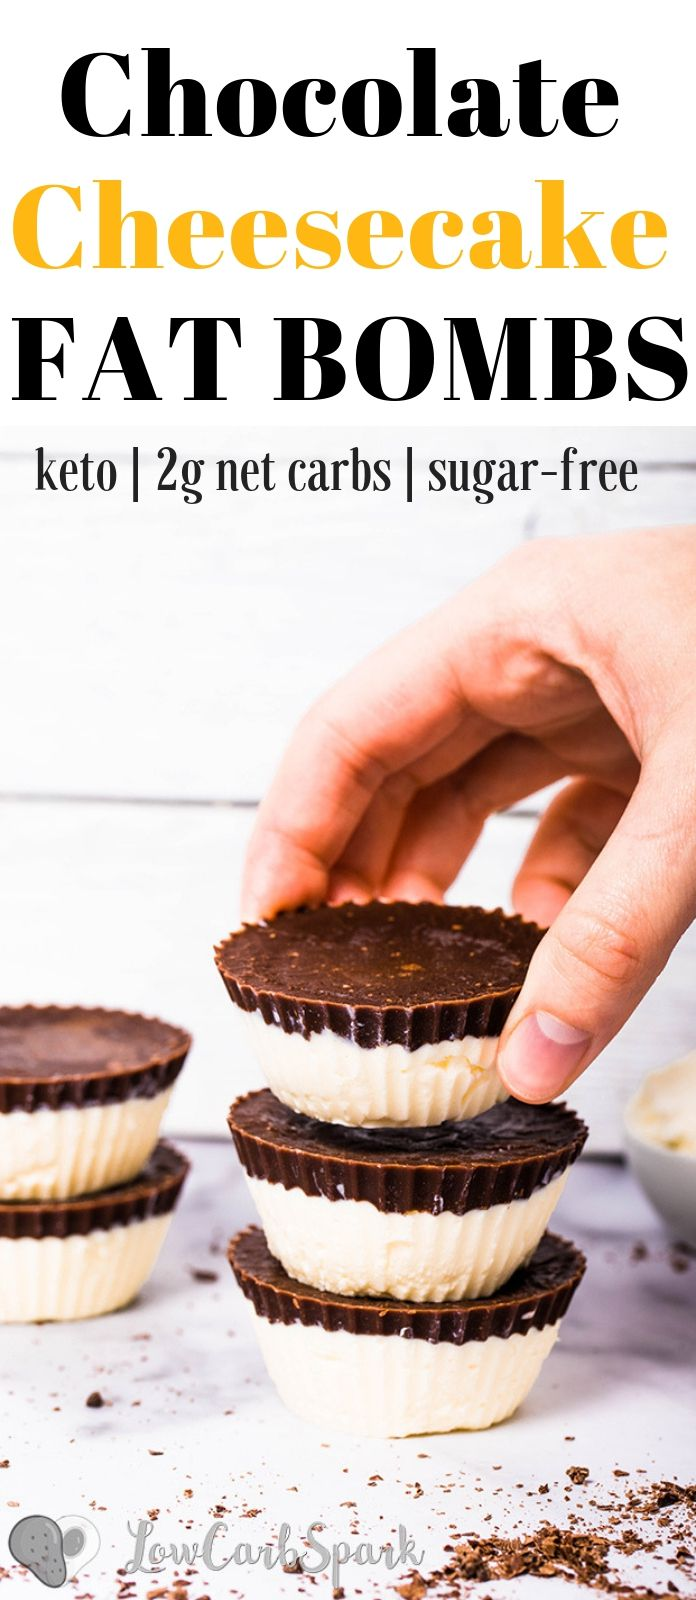 These delicious chocolate cheesecake fat bombs are quick and easy to make. Only 5 low carb ingredients are needed for these incredibly creamy and delicious 1g net carbs fat bombs. #fatbombs